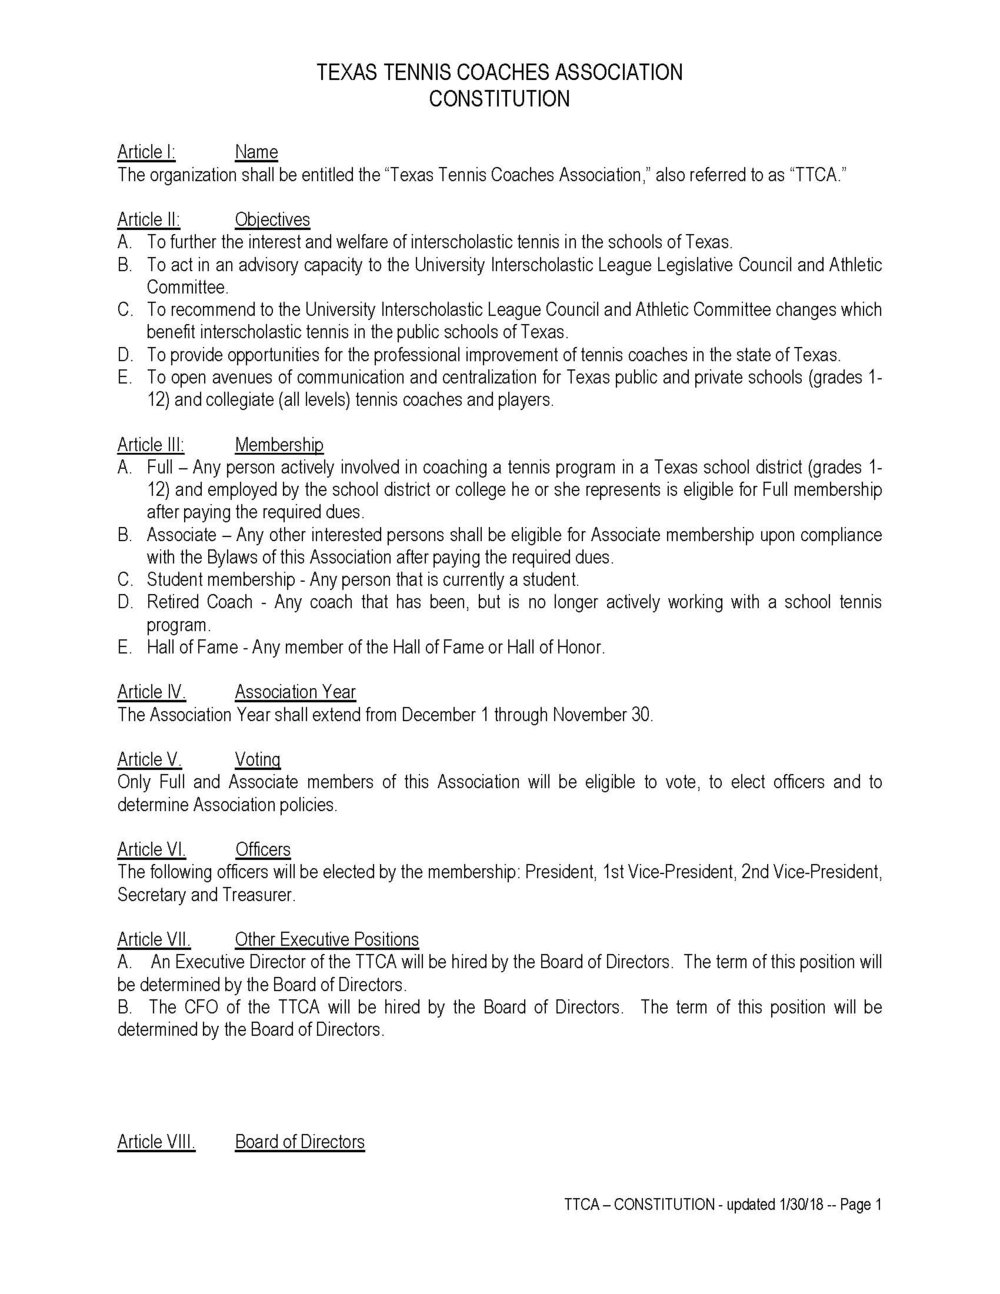 TTCA Constitution_Page_1.jpg